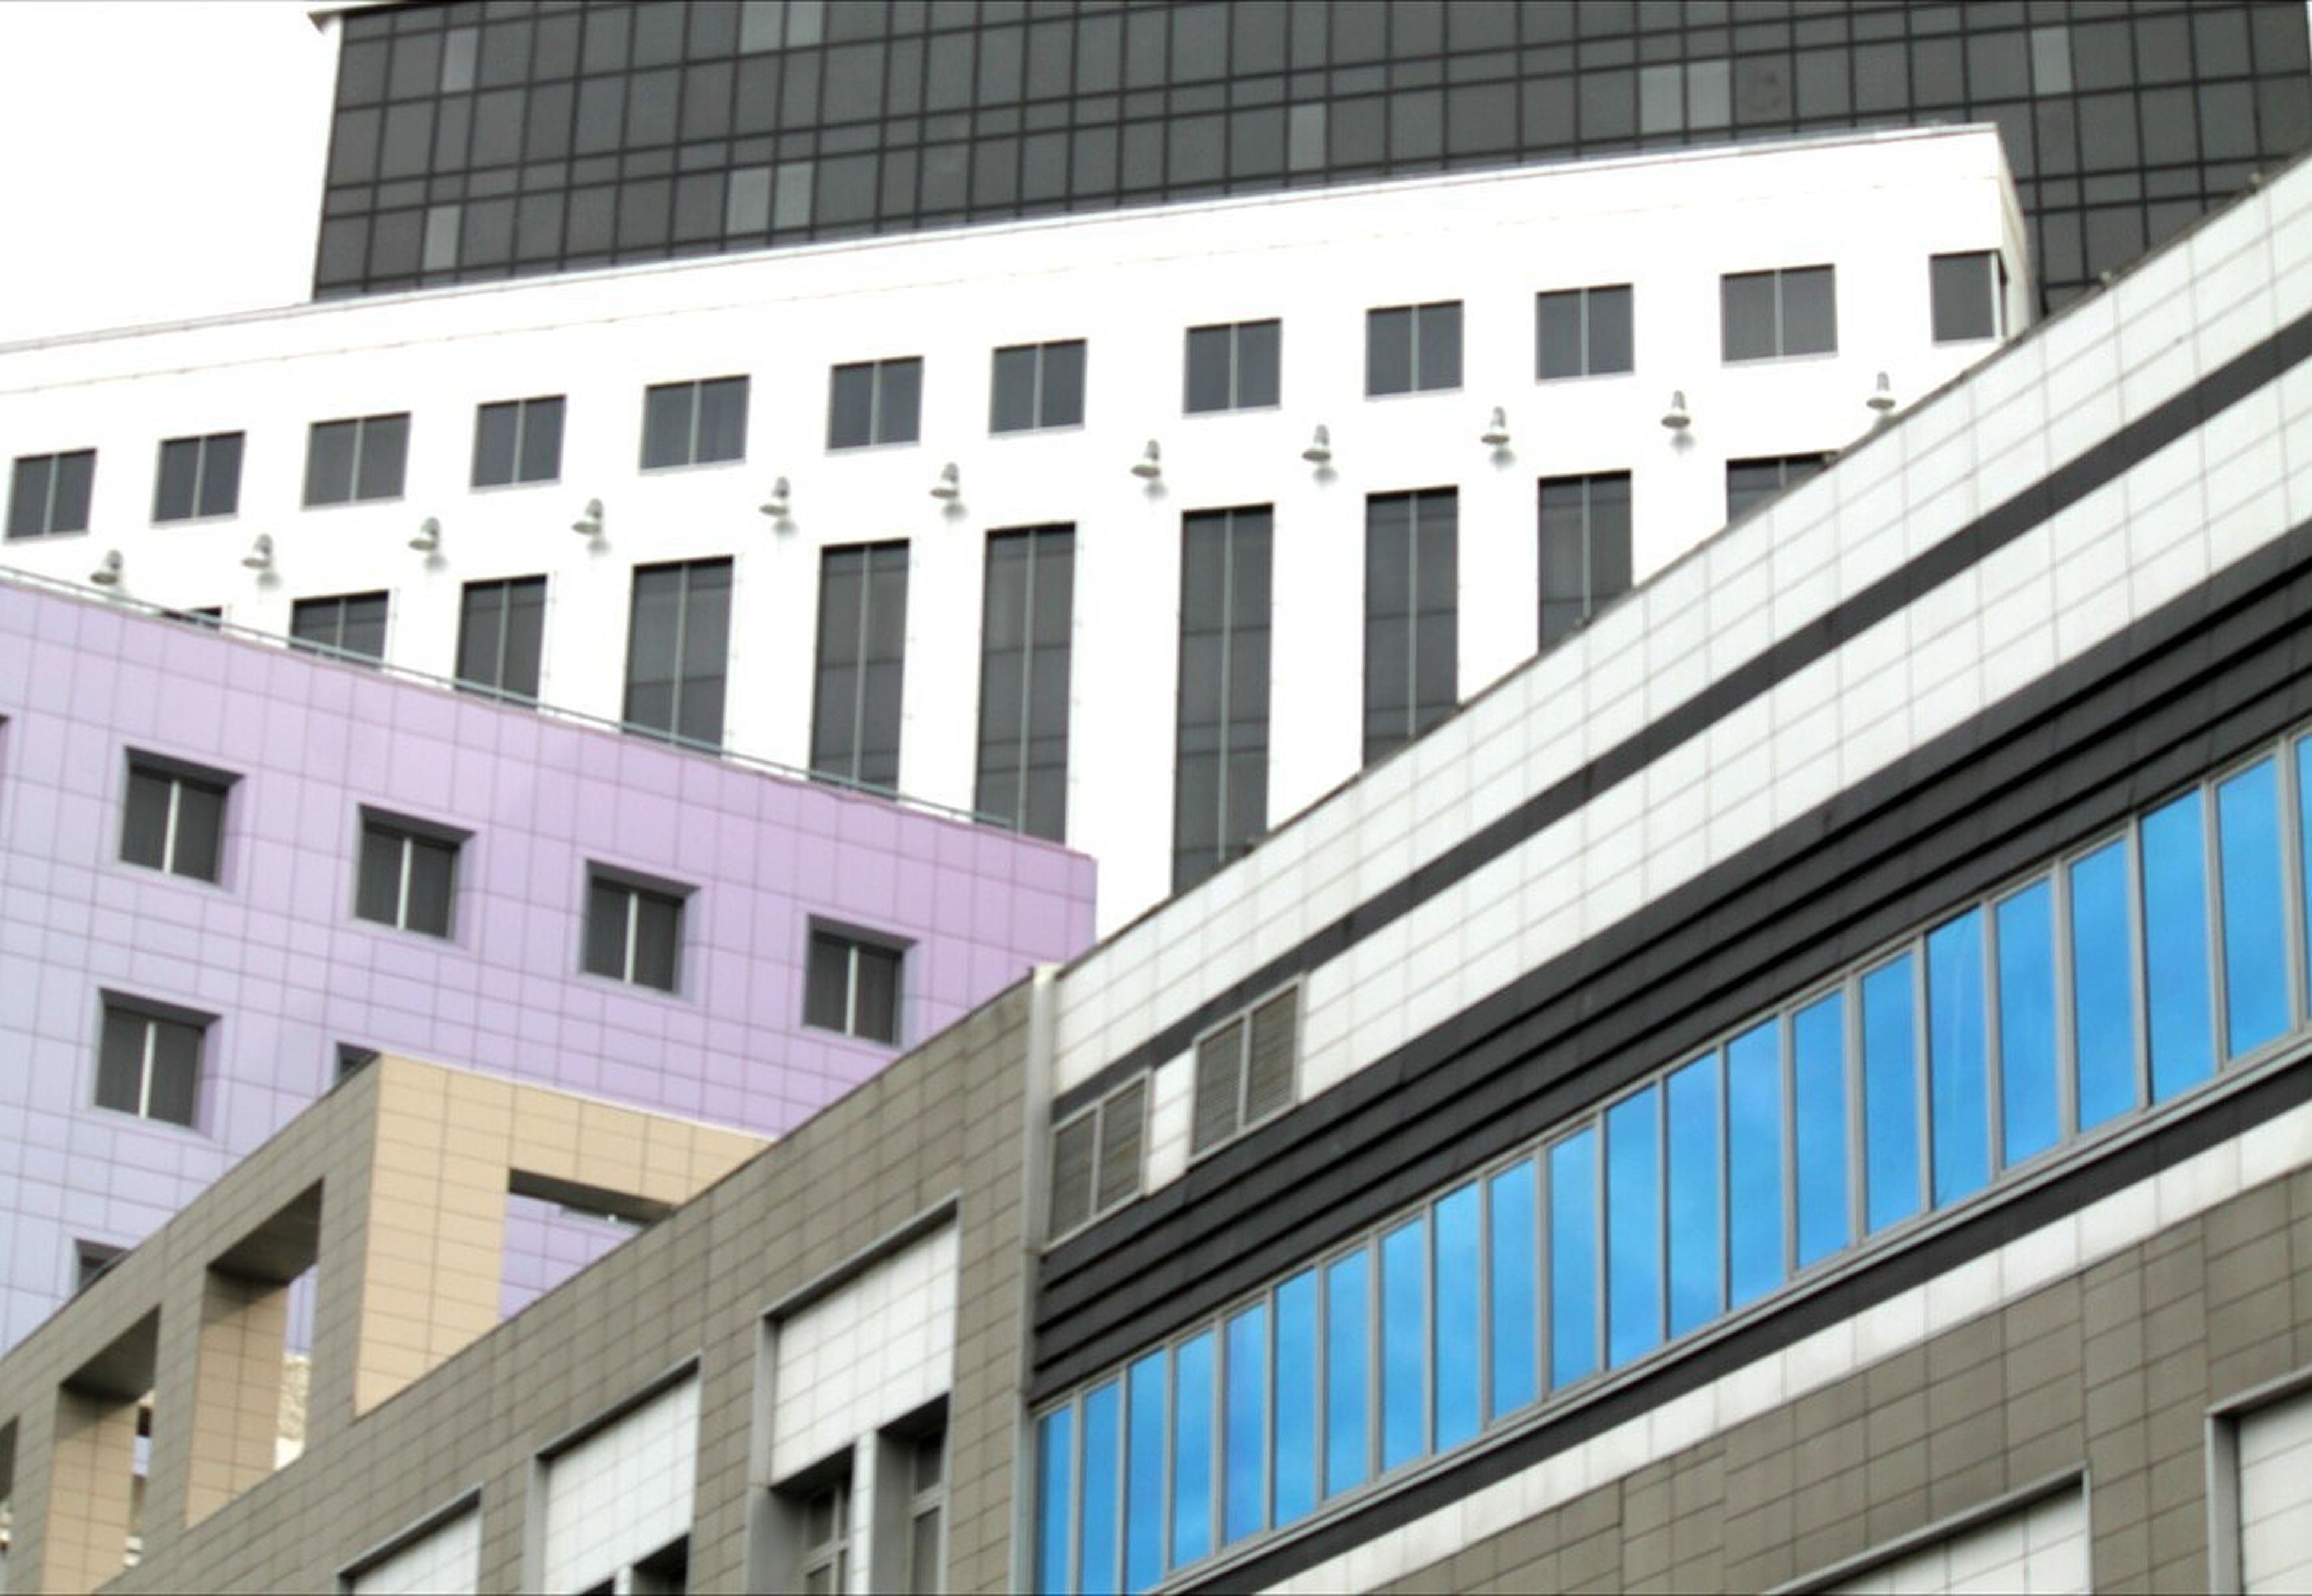 building exterior, architecture, built structure, low angle view, window, city, modern, office building, building, repetition, skyscraper, tower, building story, architectural feature, city life, tall - high, day, outdoors, development, full frame, office block, facade, no people, geometric shape